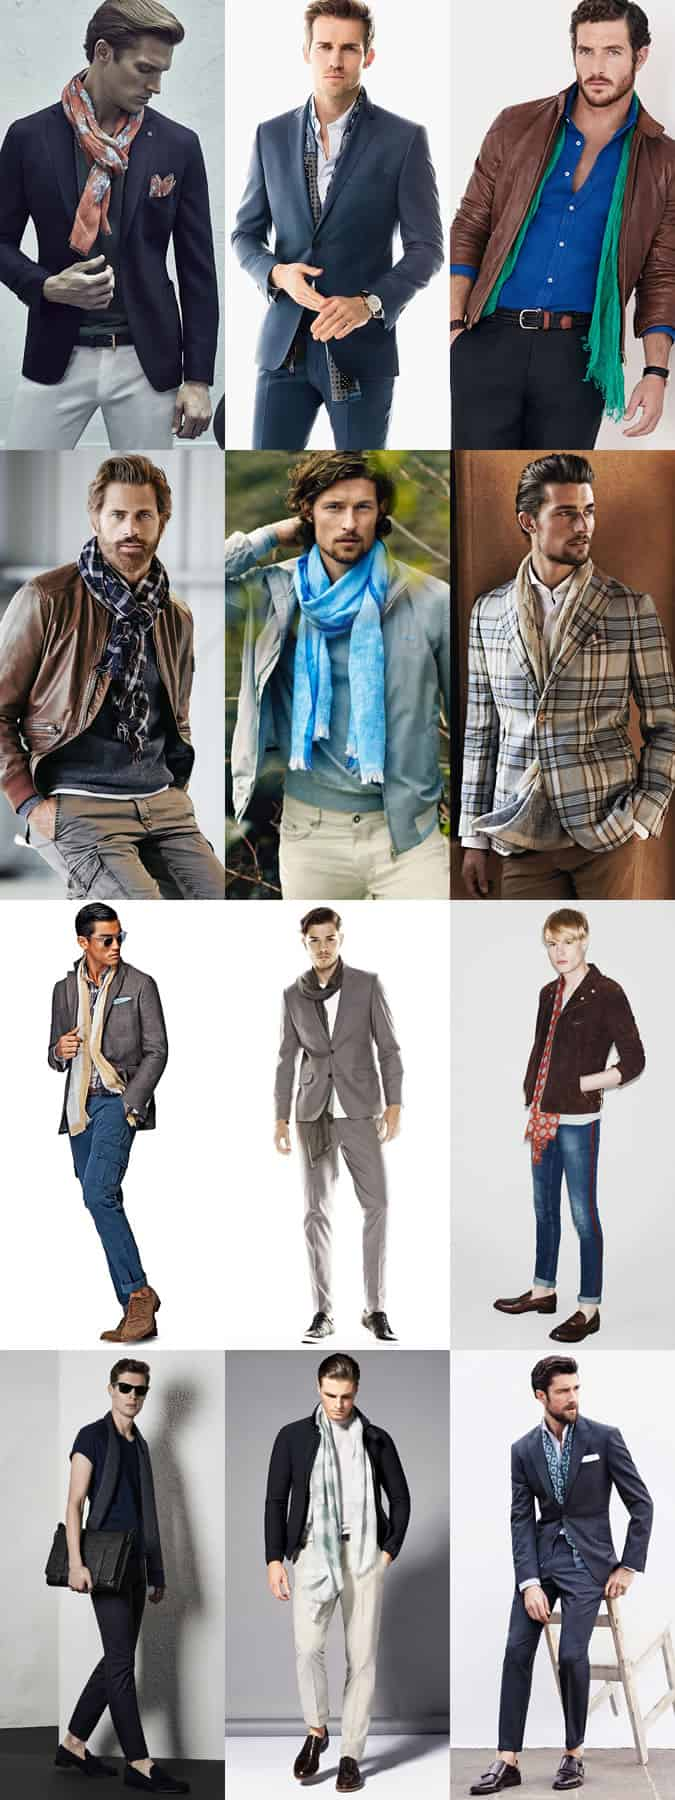 Men's Lightweight Scarves Outfit Inspiration Lookbook: Spring/Summer 2015